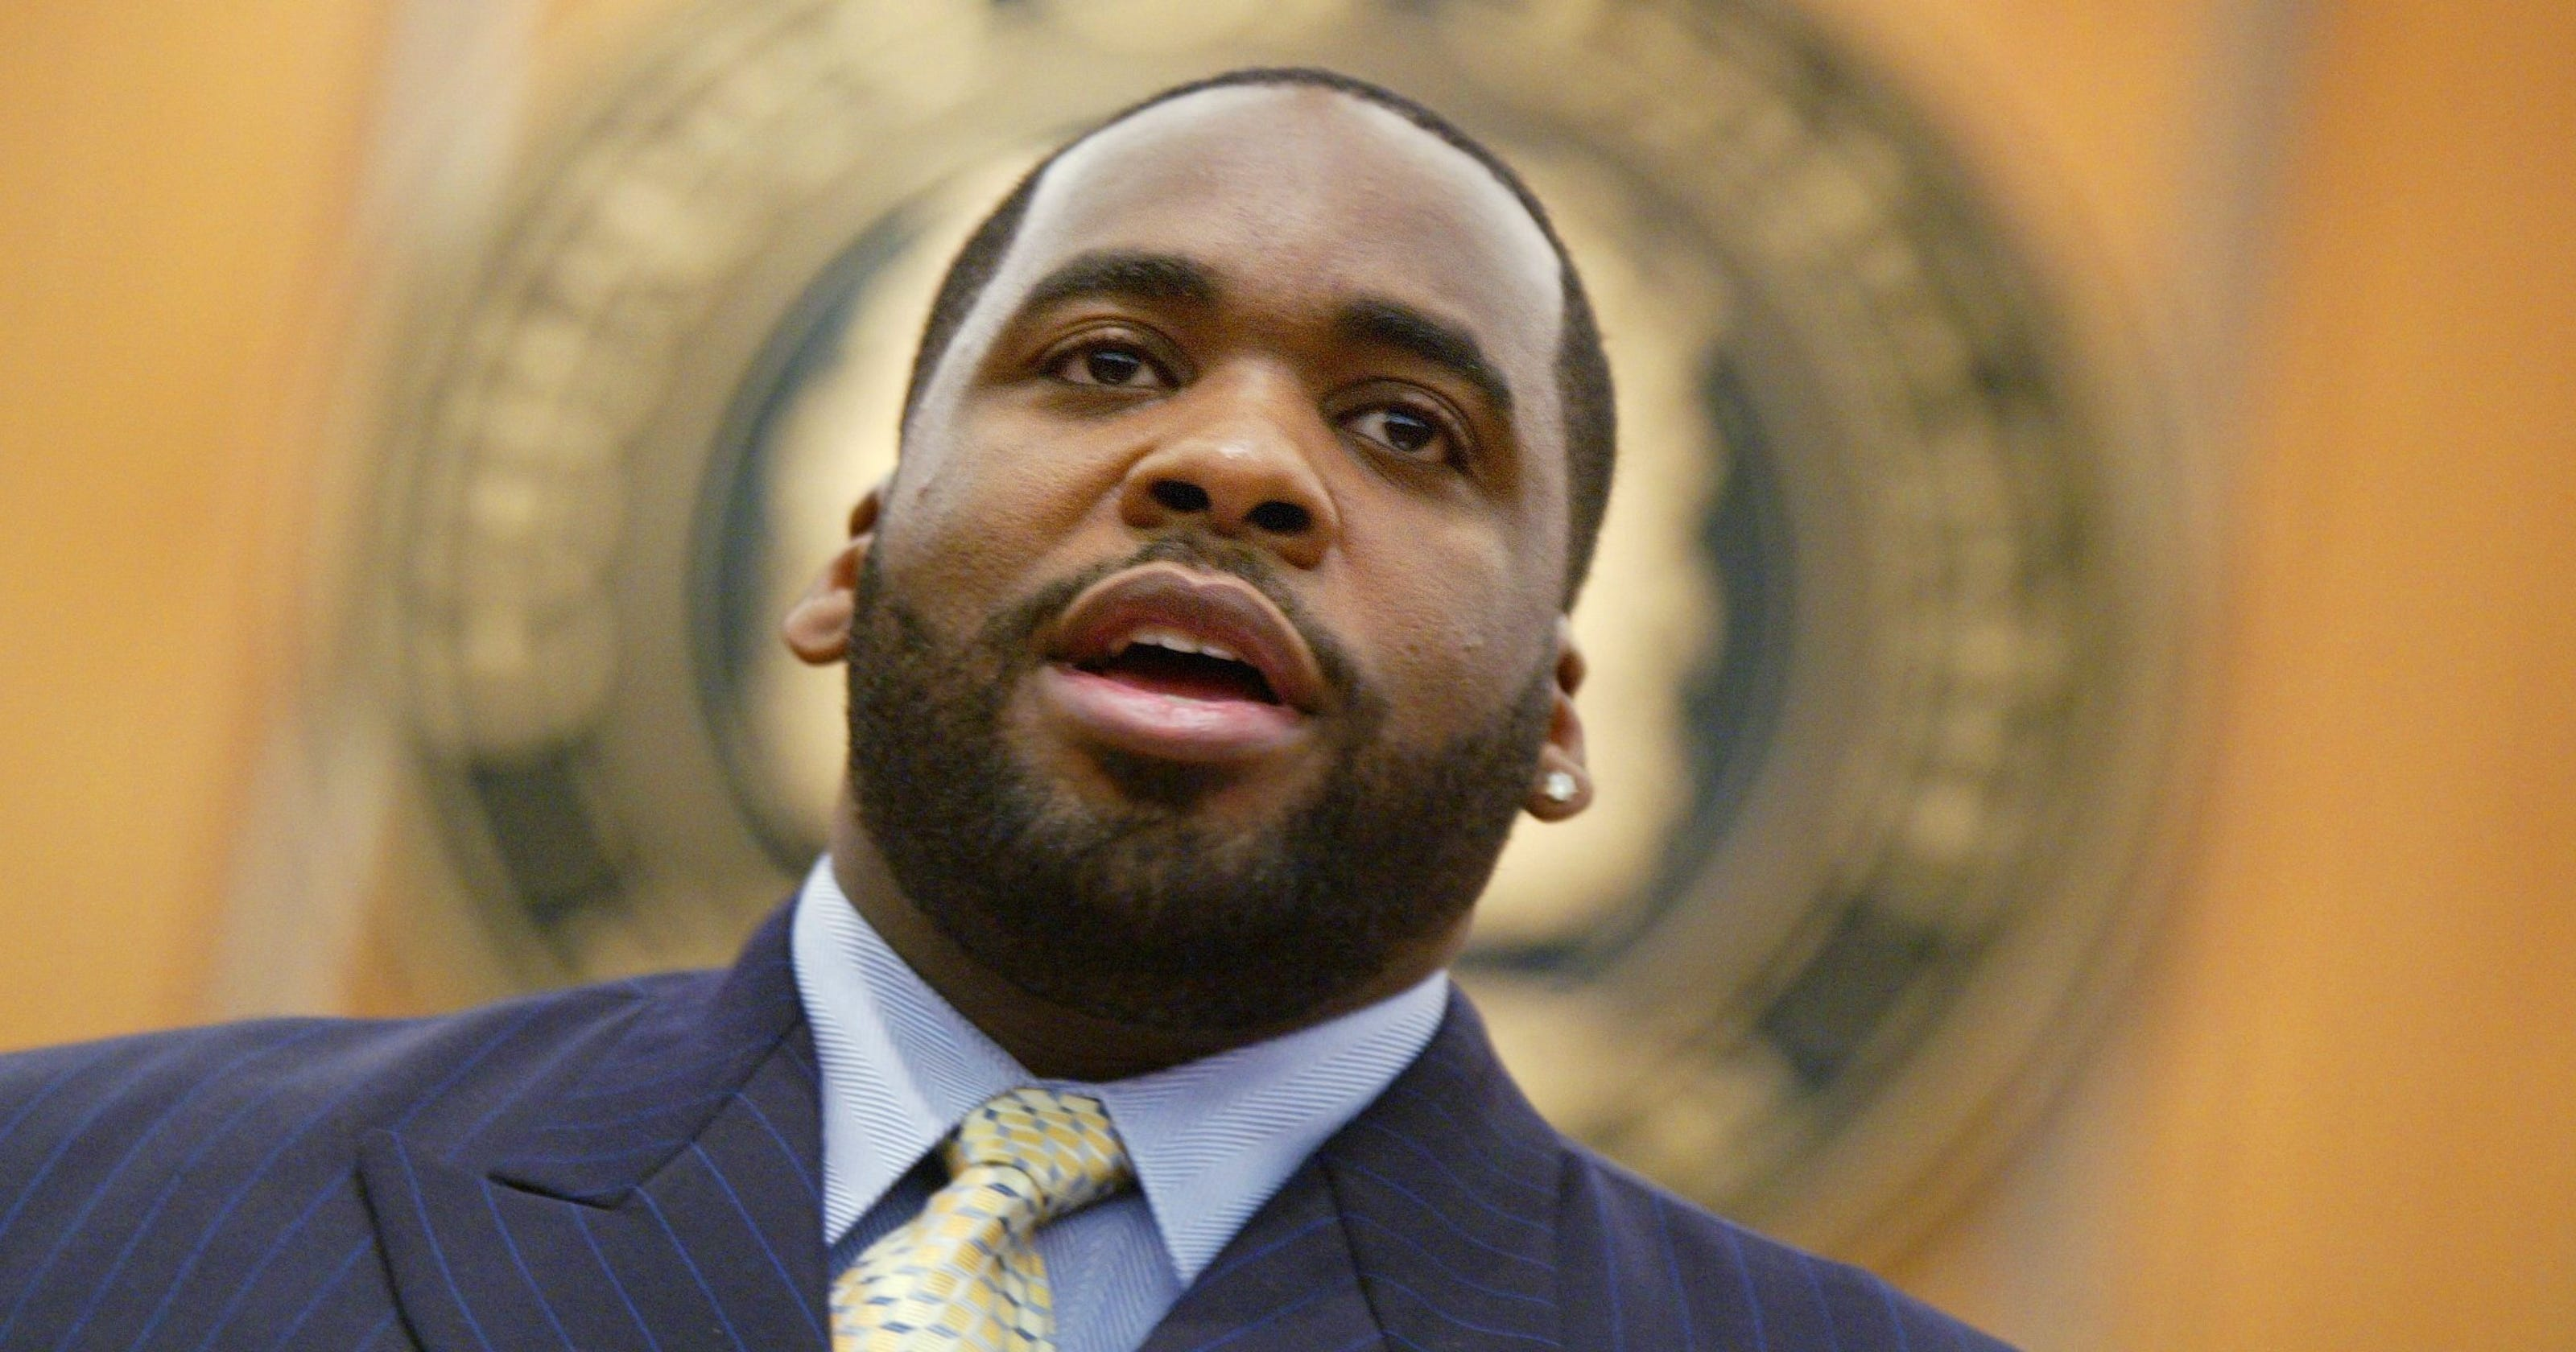 kwame kilpatrick - photo #18